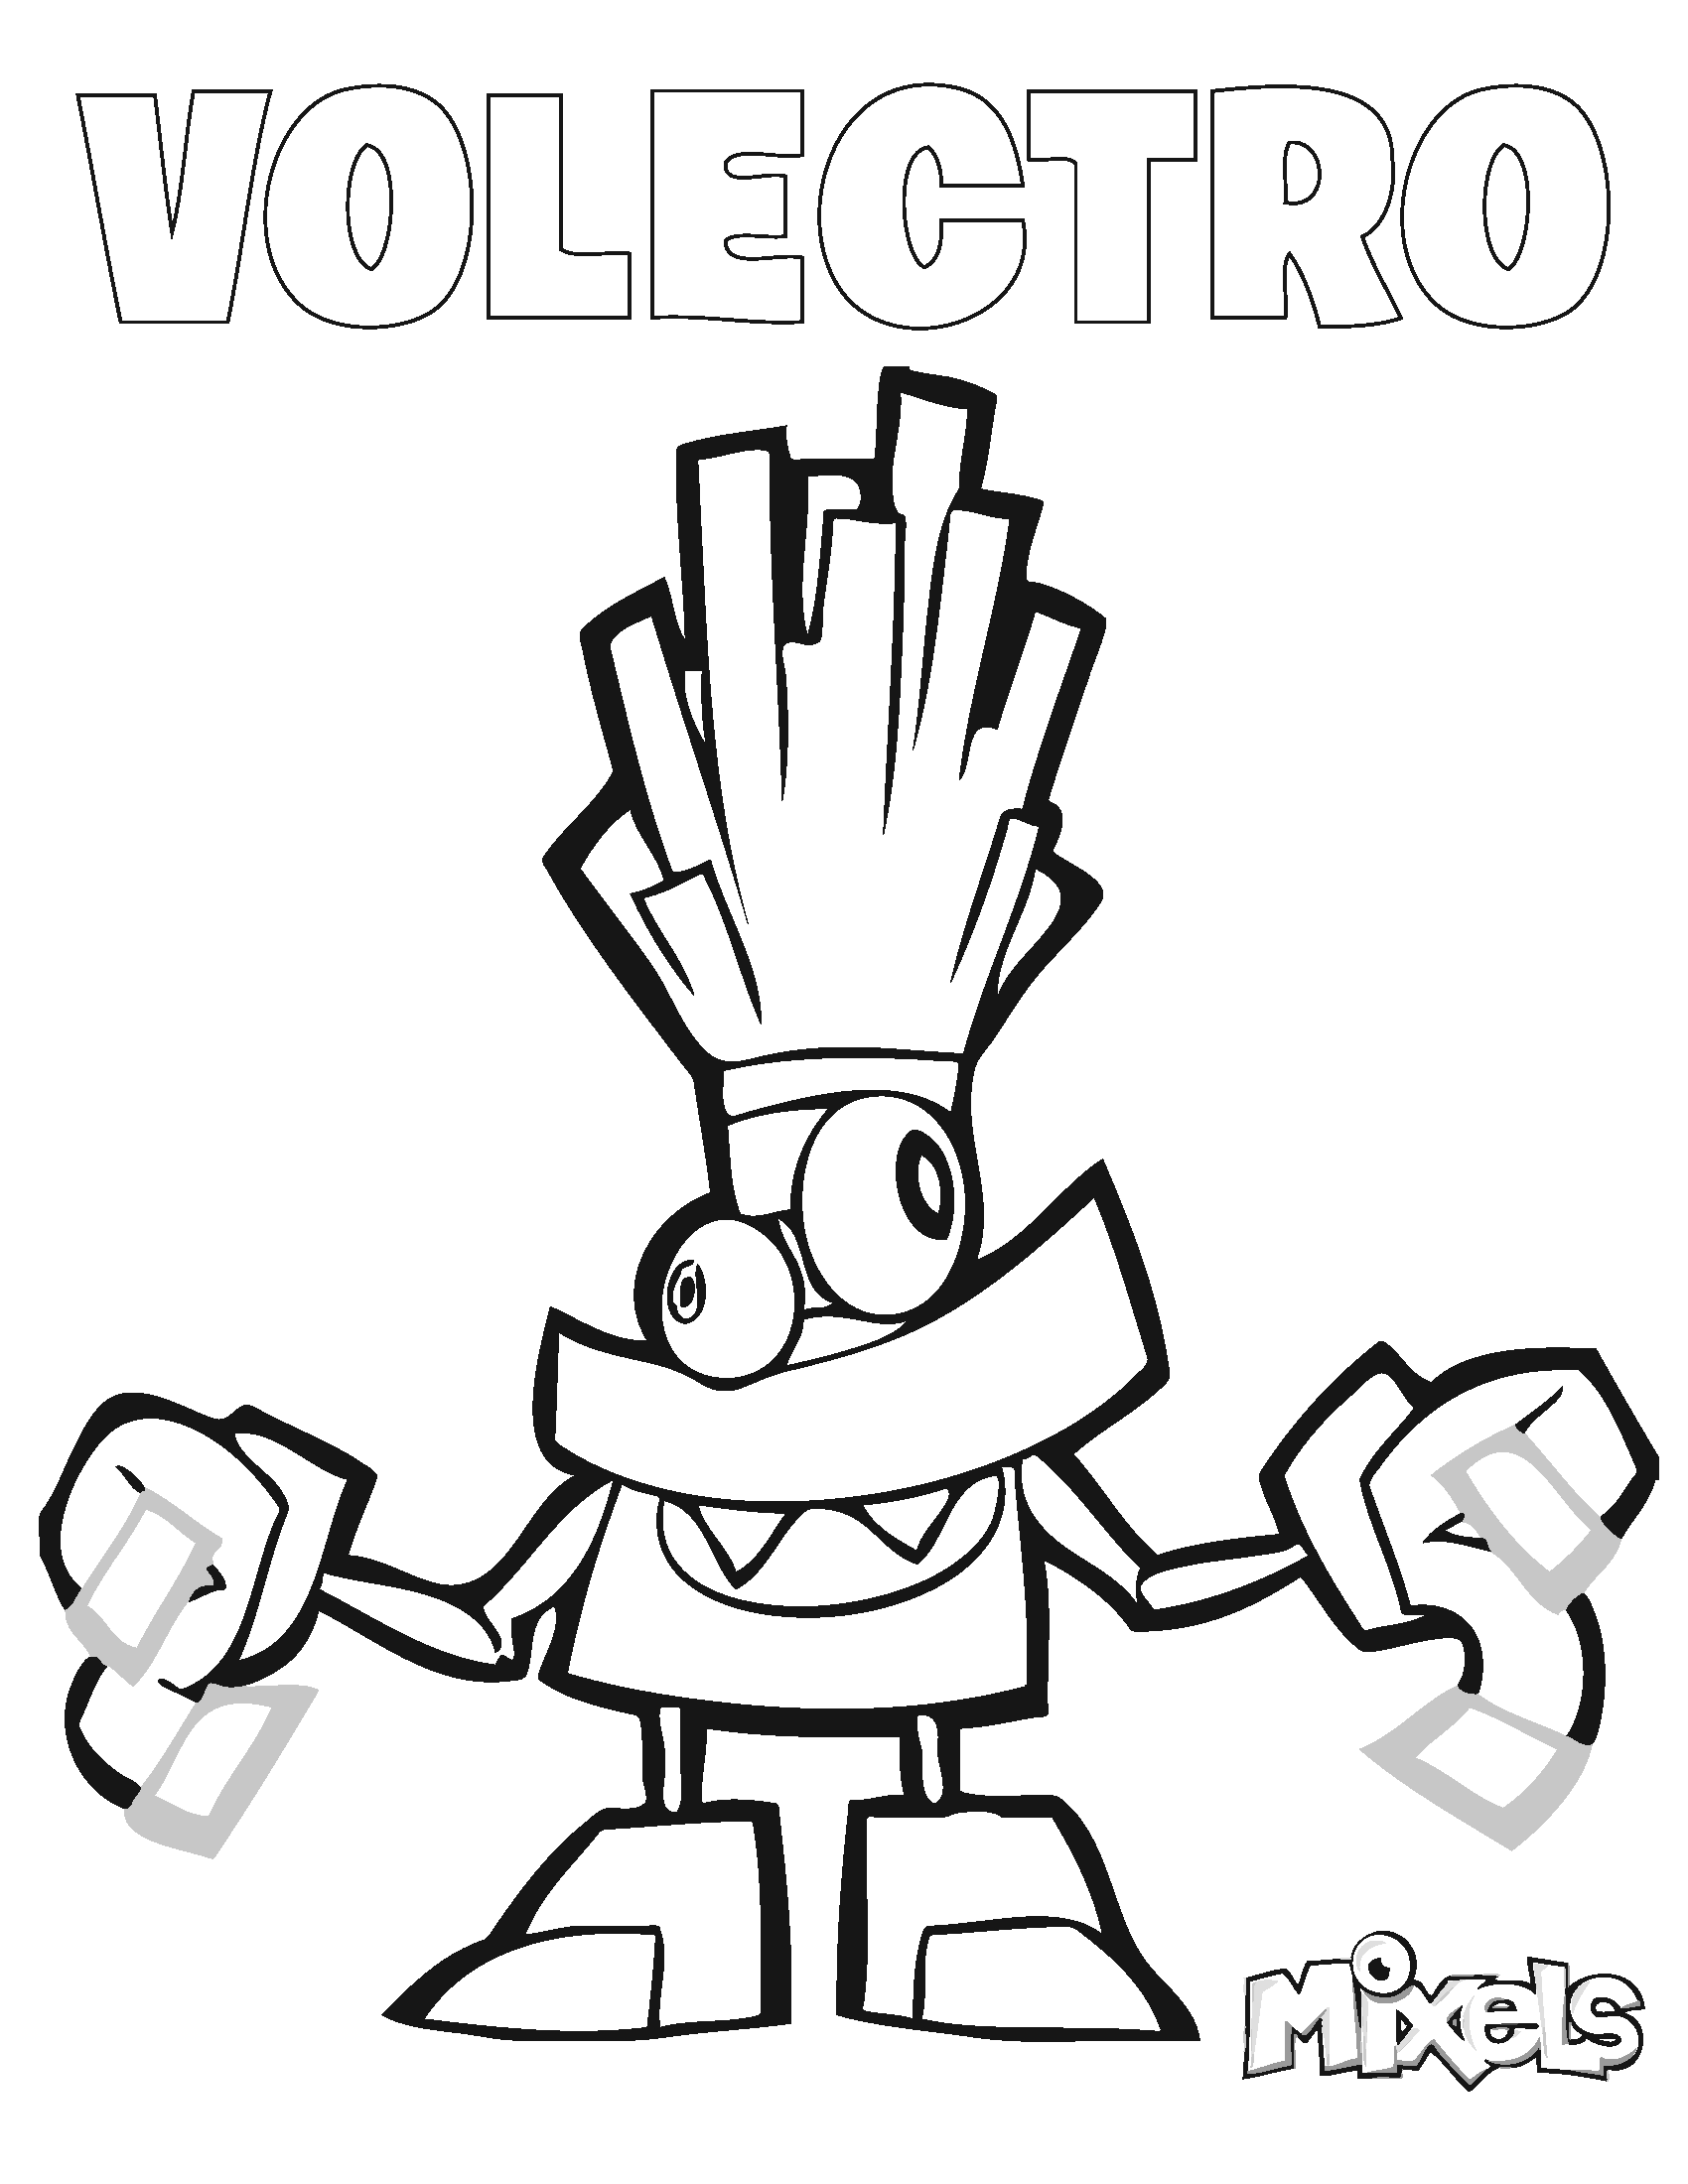 lego mixels coloring pages - mixels coloring page volectro my little corner